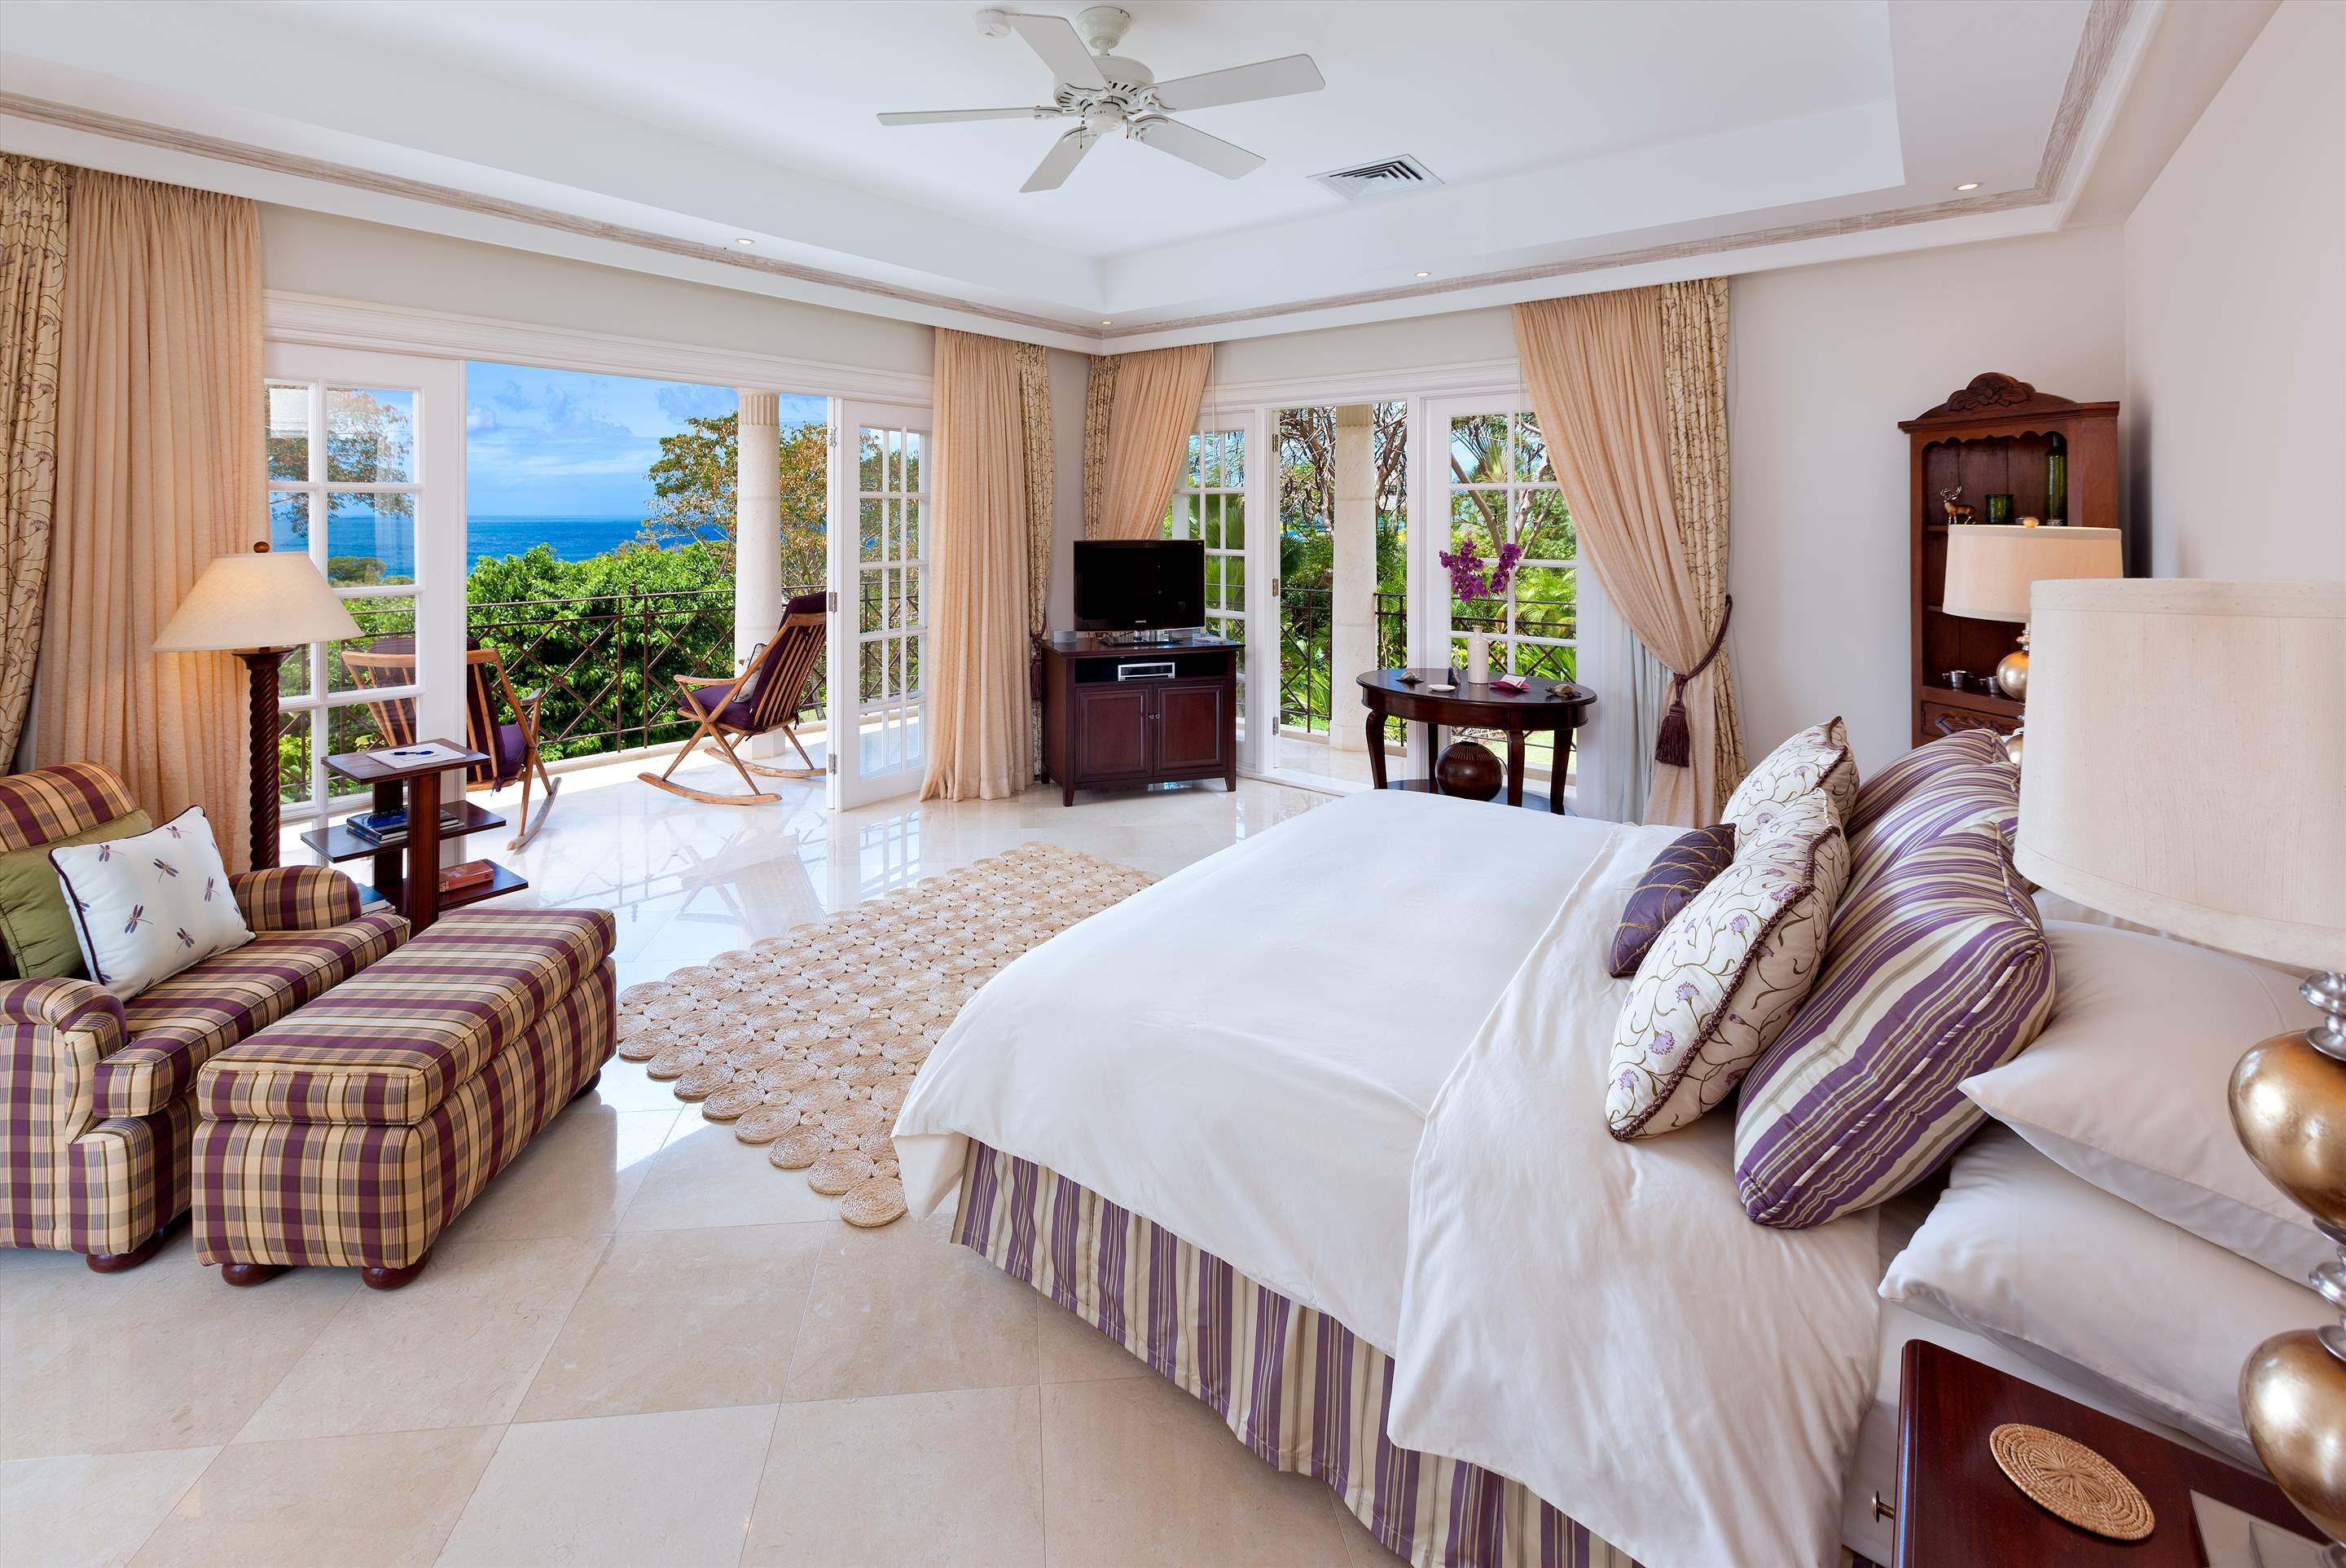 Illusion, Four Bedroom Rate, 4 bedroom villa in St. James & West Coast, Barbados Photo #15